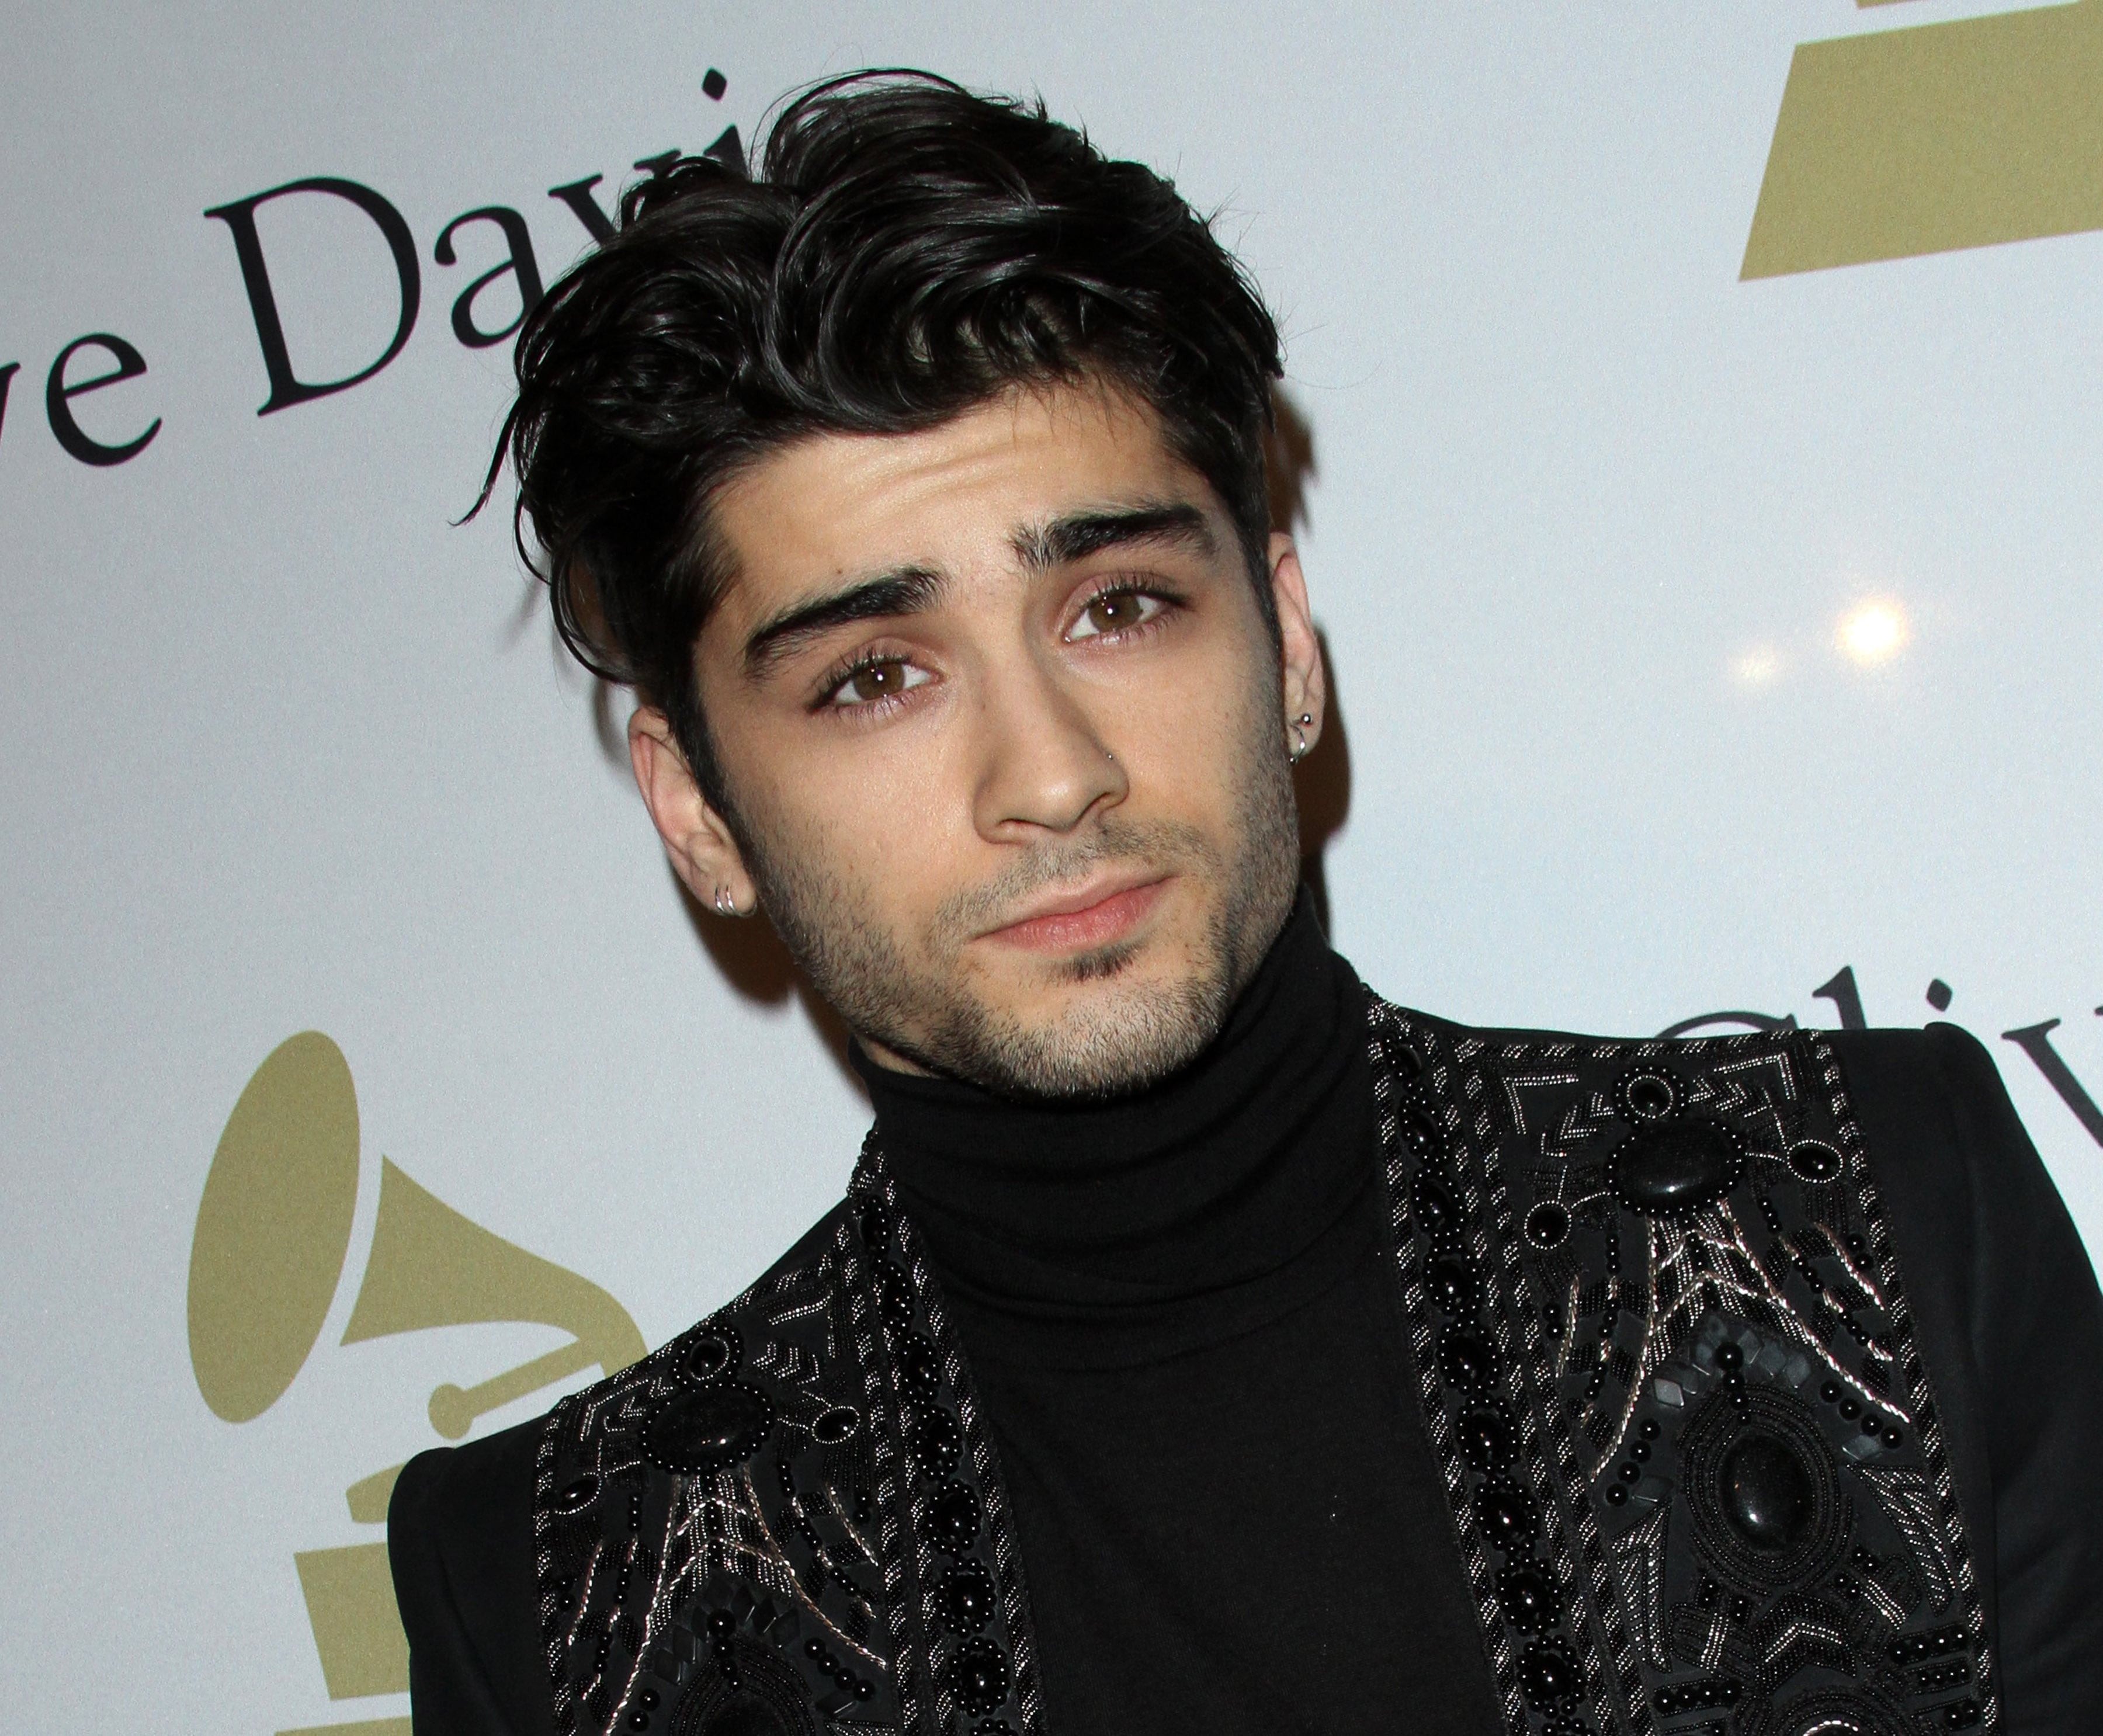 In 2015, Directioners everywhere mourned when they found out that Zayn Malik was leaving One Direction. Since leaving the band, Zayn has released one studio album, with one more on the way, and many of his songs debuting at number one all over the world. (Photo: WENN)